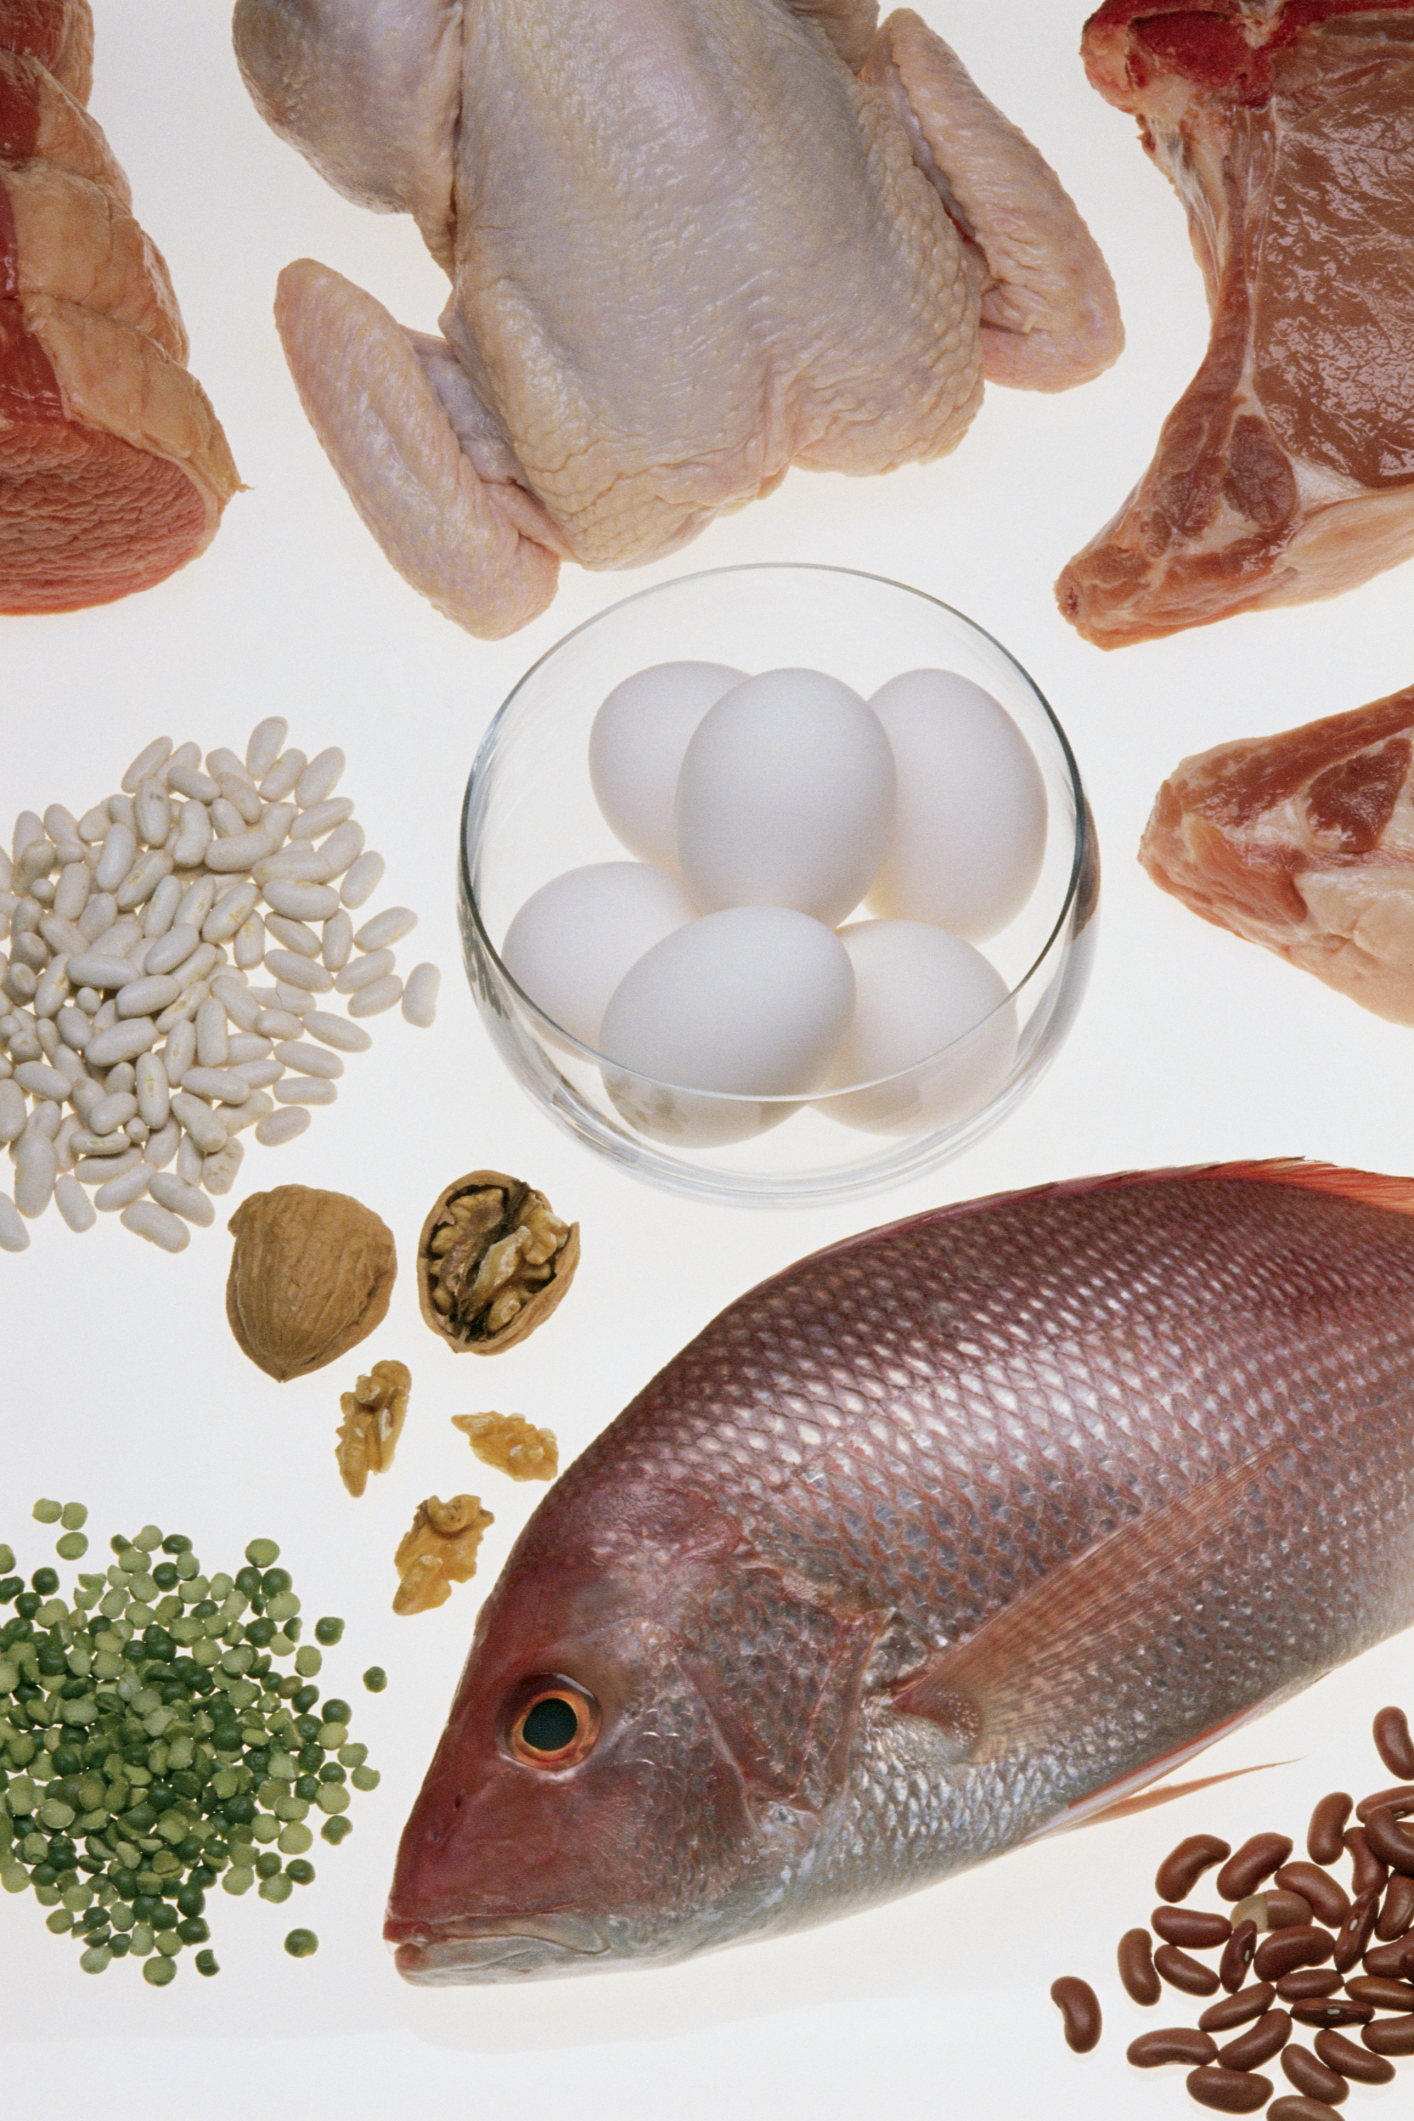 A high-protein diet can help support fat loss.